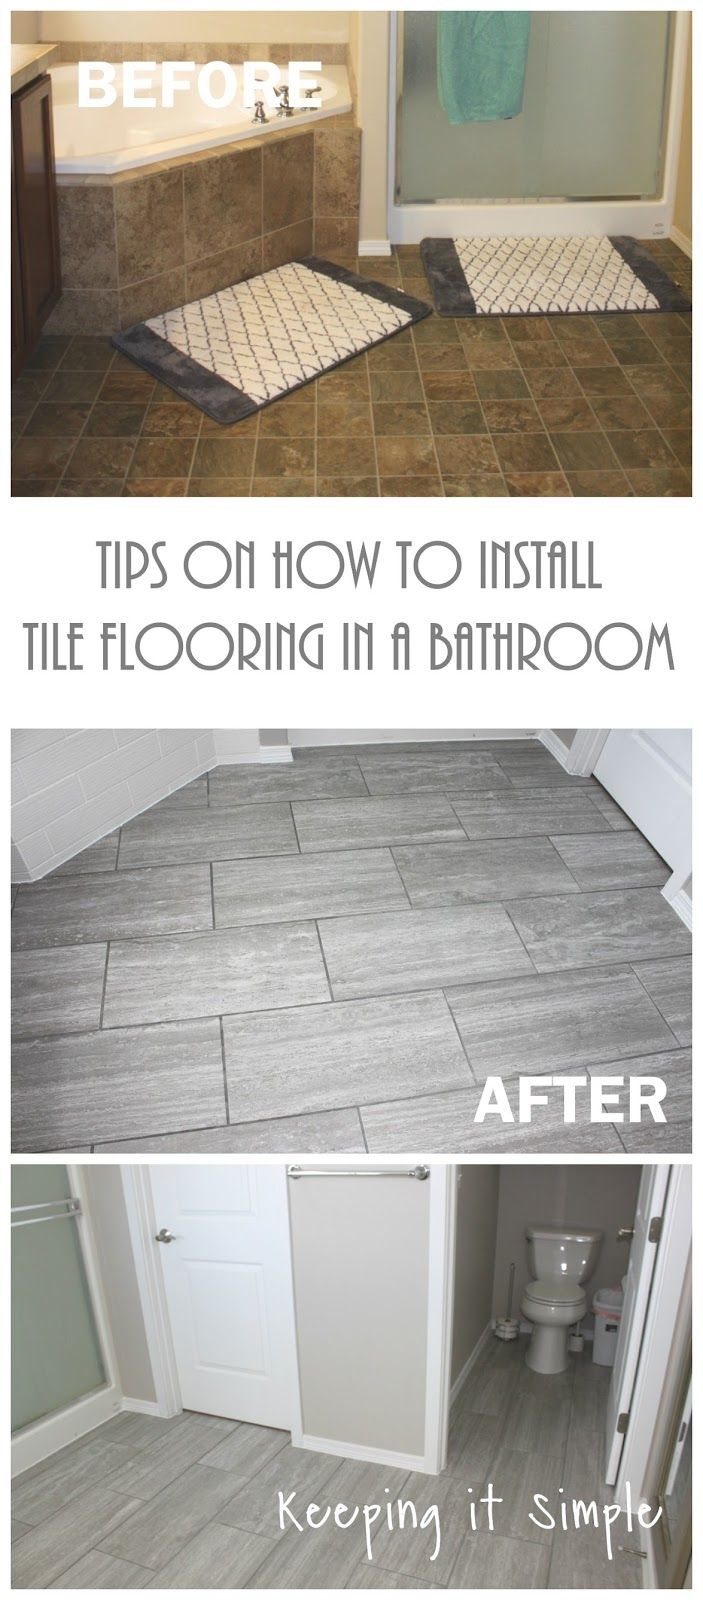 Best 25+ How to install tile ideas on Pinterest | Kitchen ...